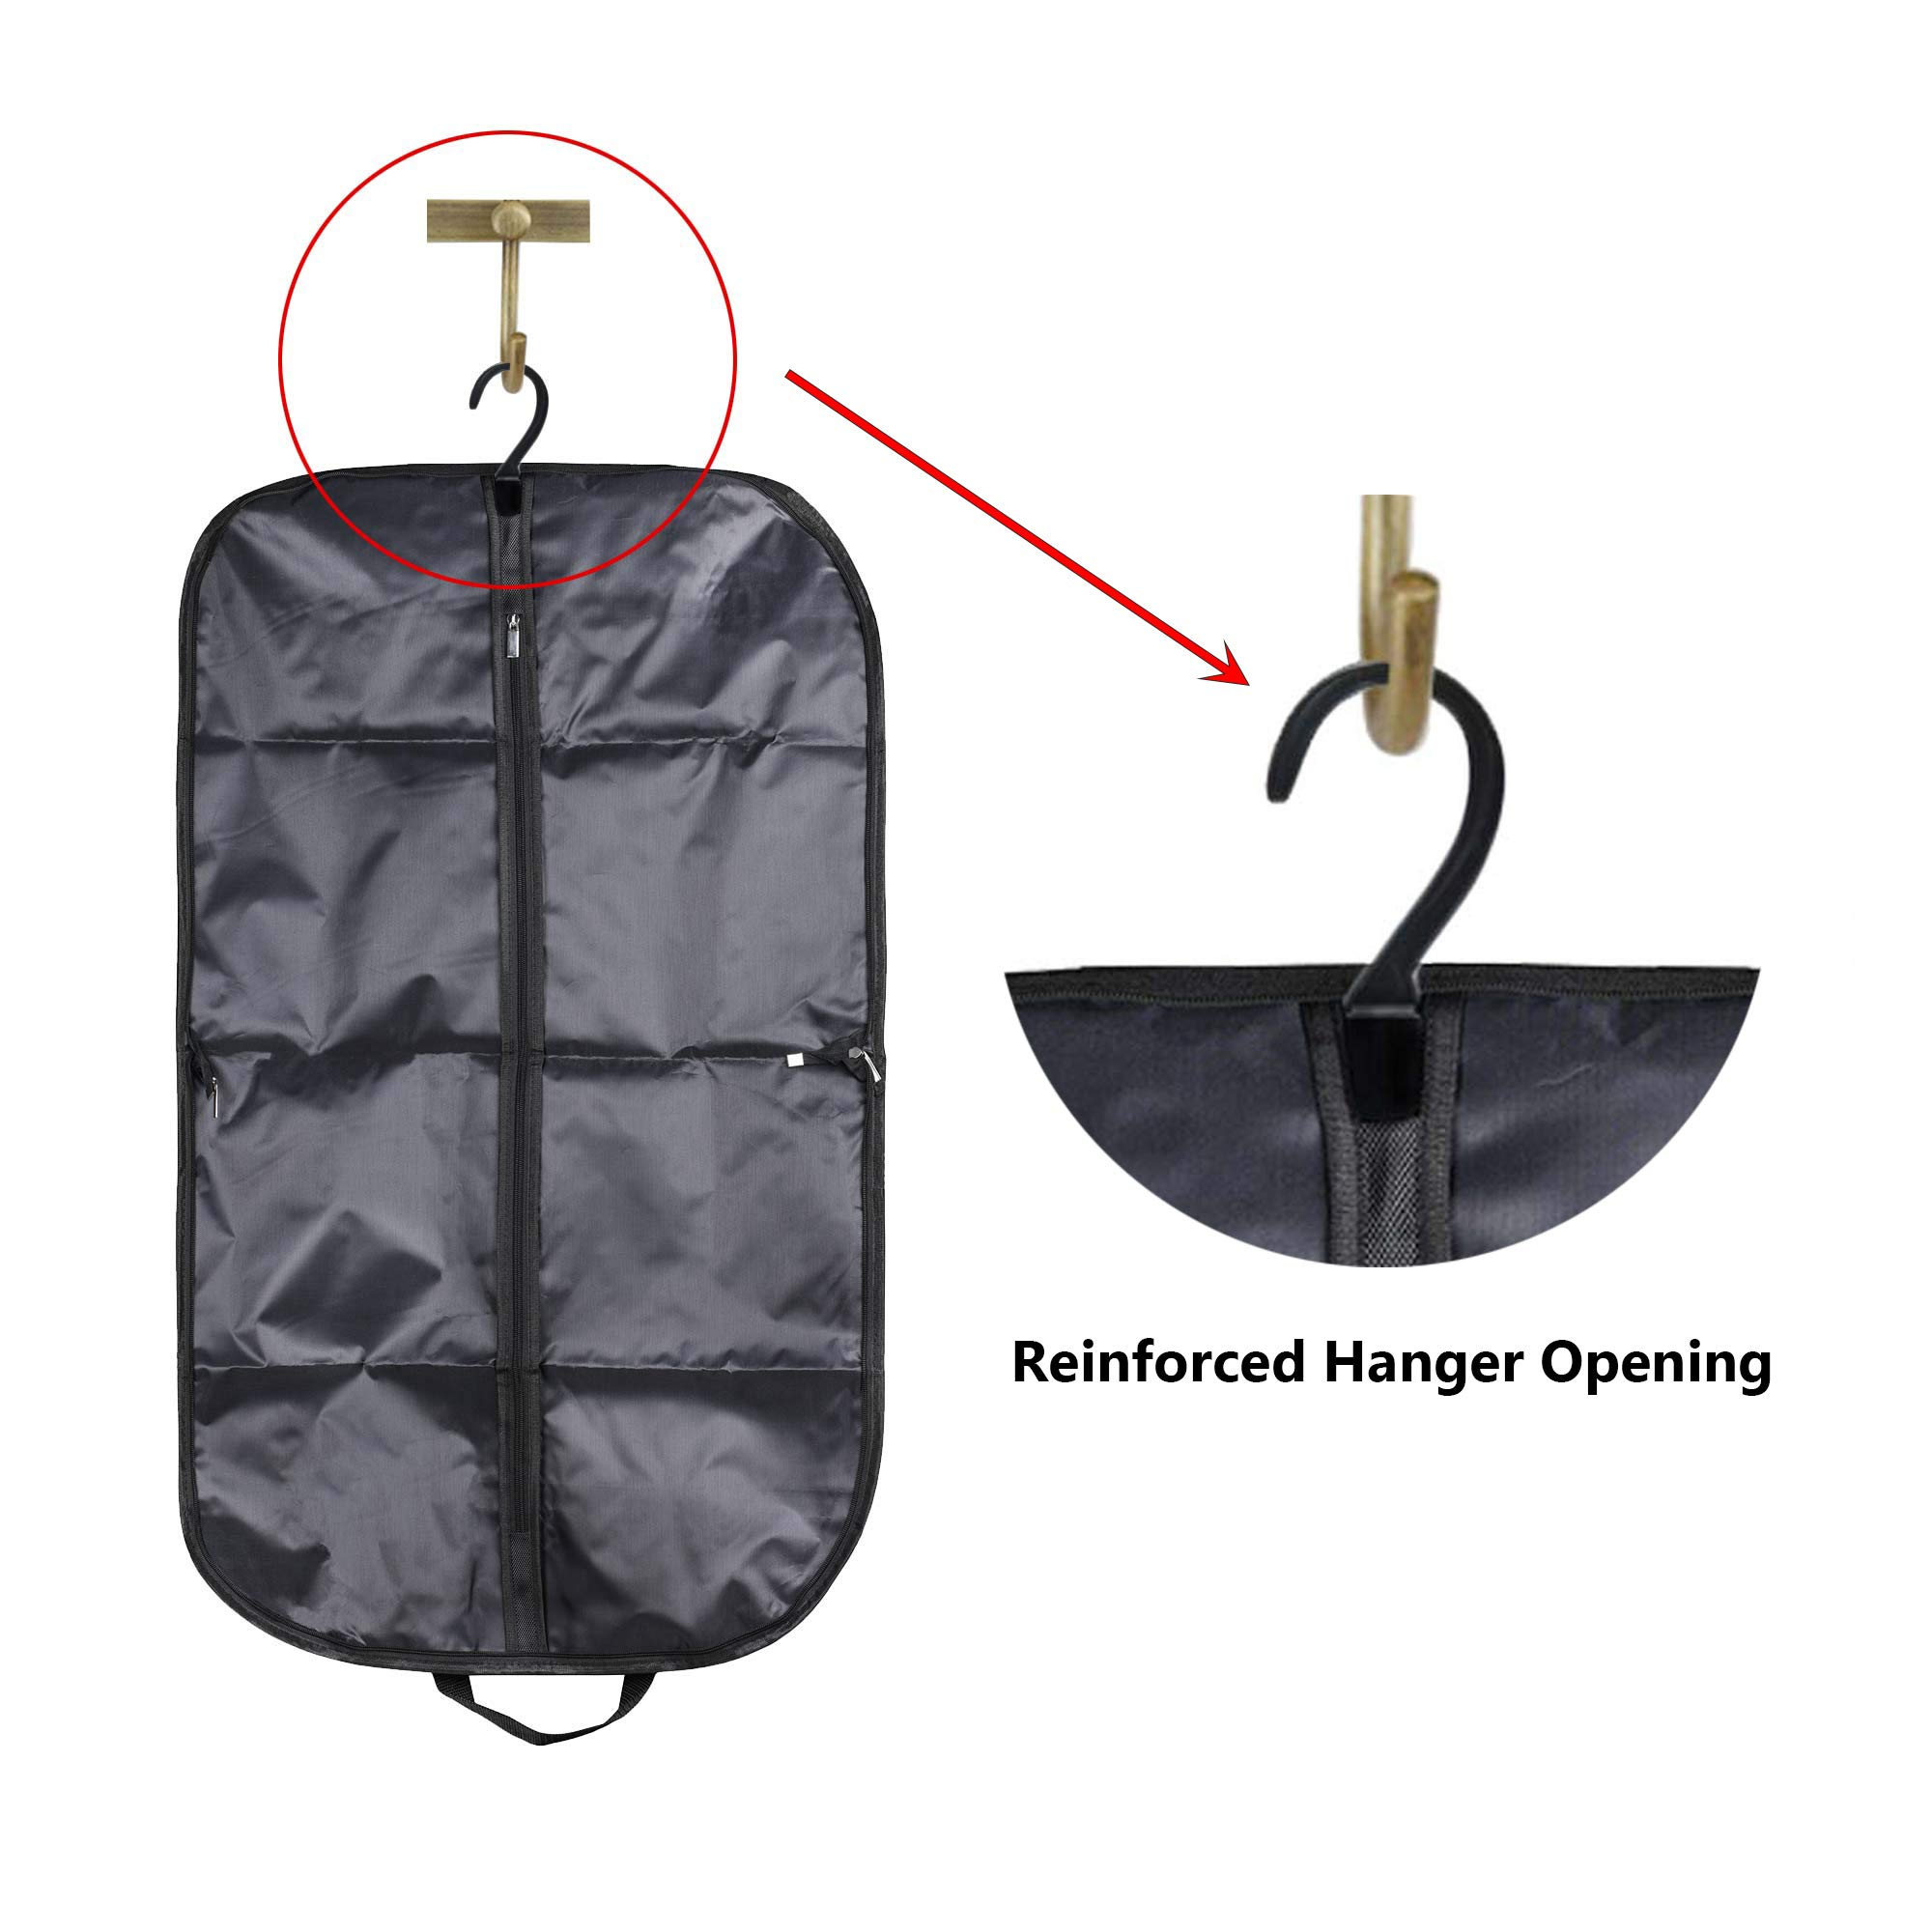 COSMOS Suit & Dress Travel Storage Garment Bag Carry Bag with Handles, 39 x 23 inches by CM (Image #4)